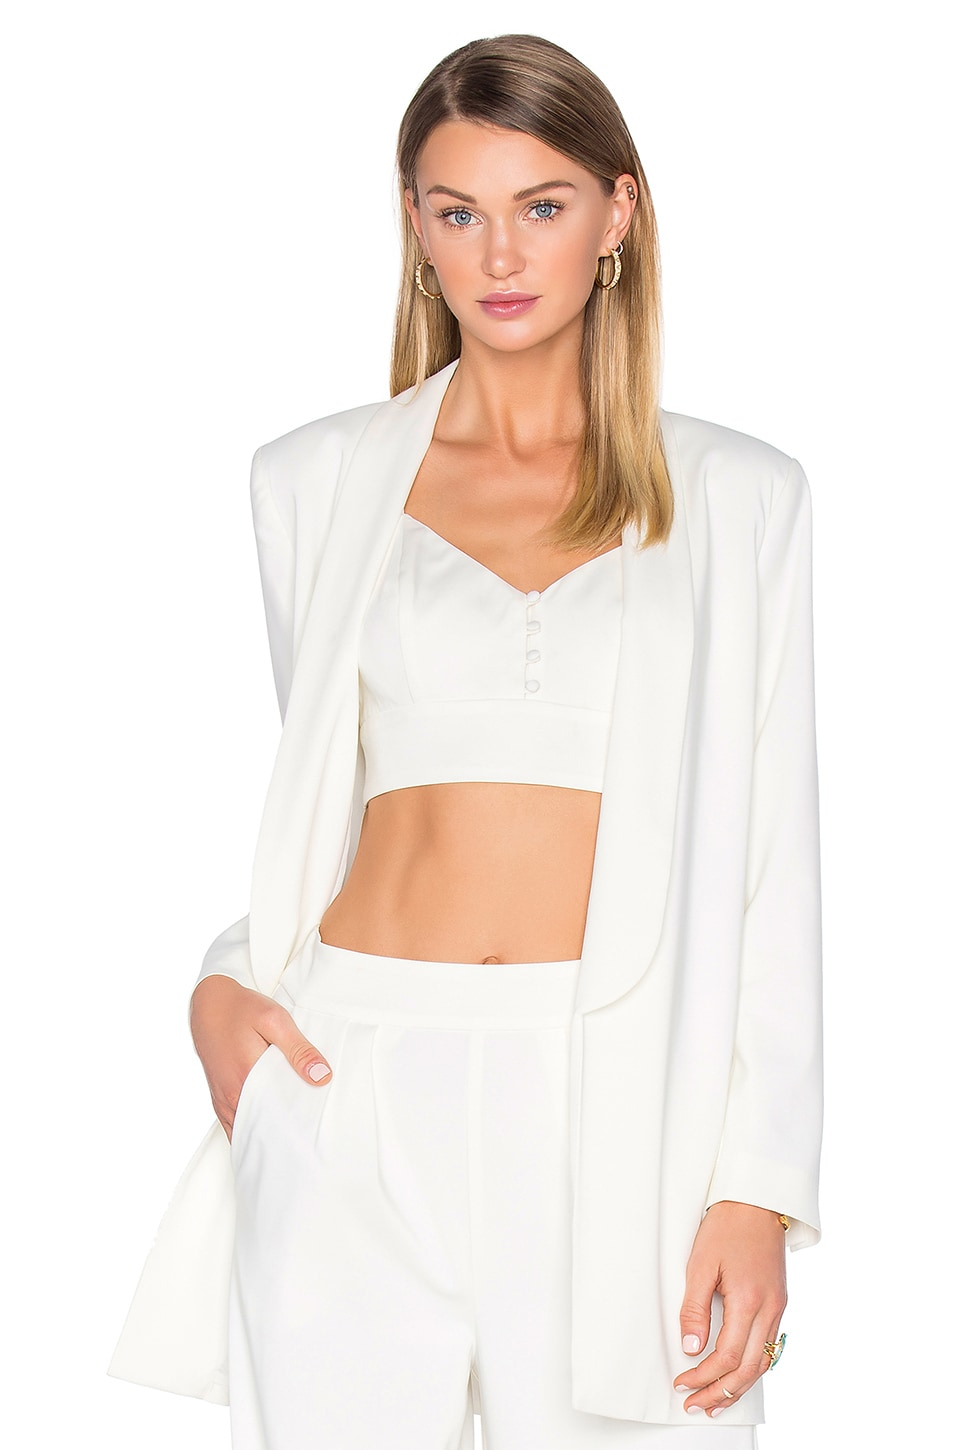 House of Harlow 1960 x REVOLVE Chloe Boyfriend Jacket in Ivory